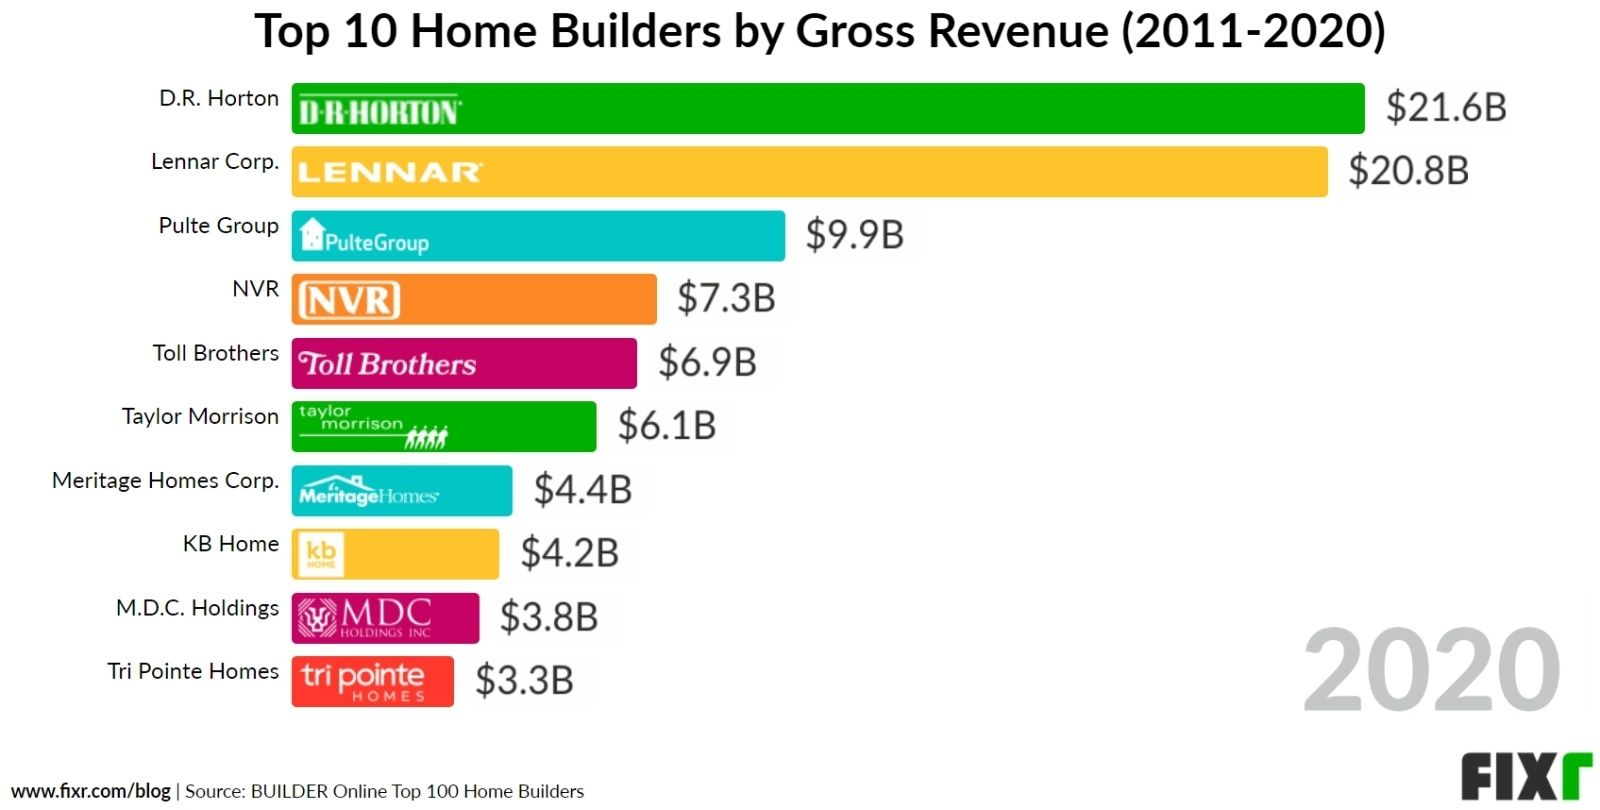 Top Home Builders by Gross Revenue 2020